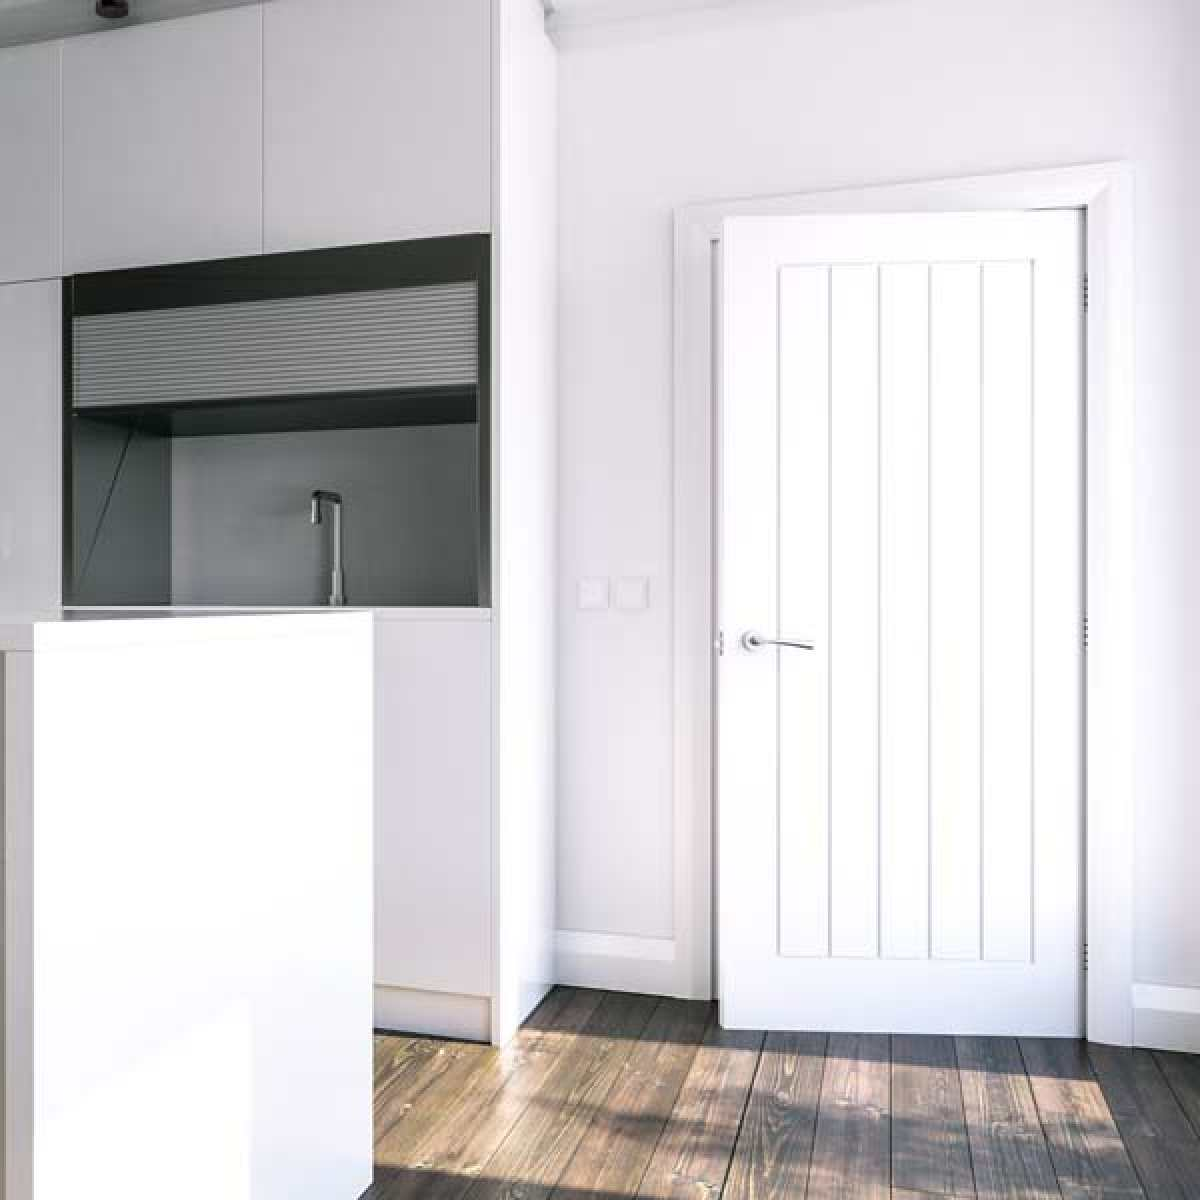 ely white primed lifestyle websters Image by Websters Timber